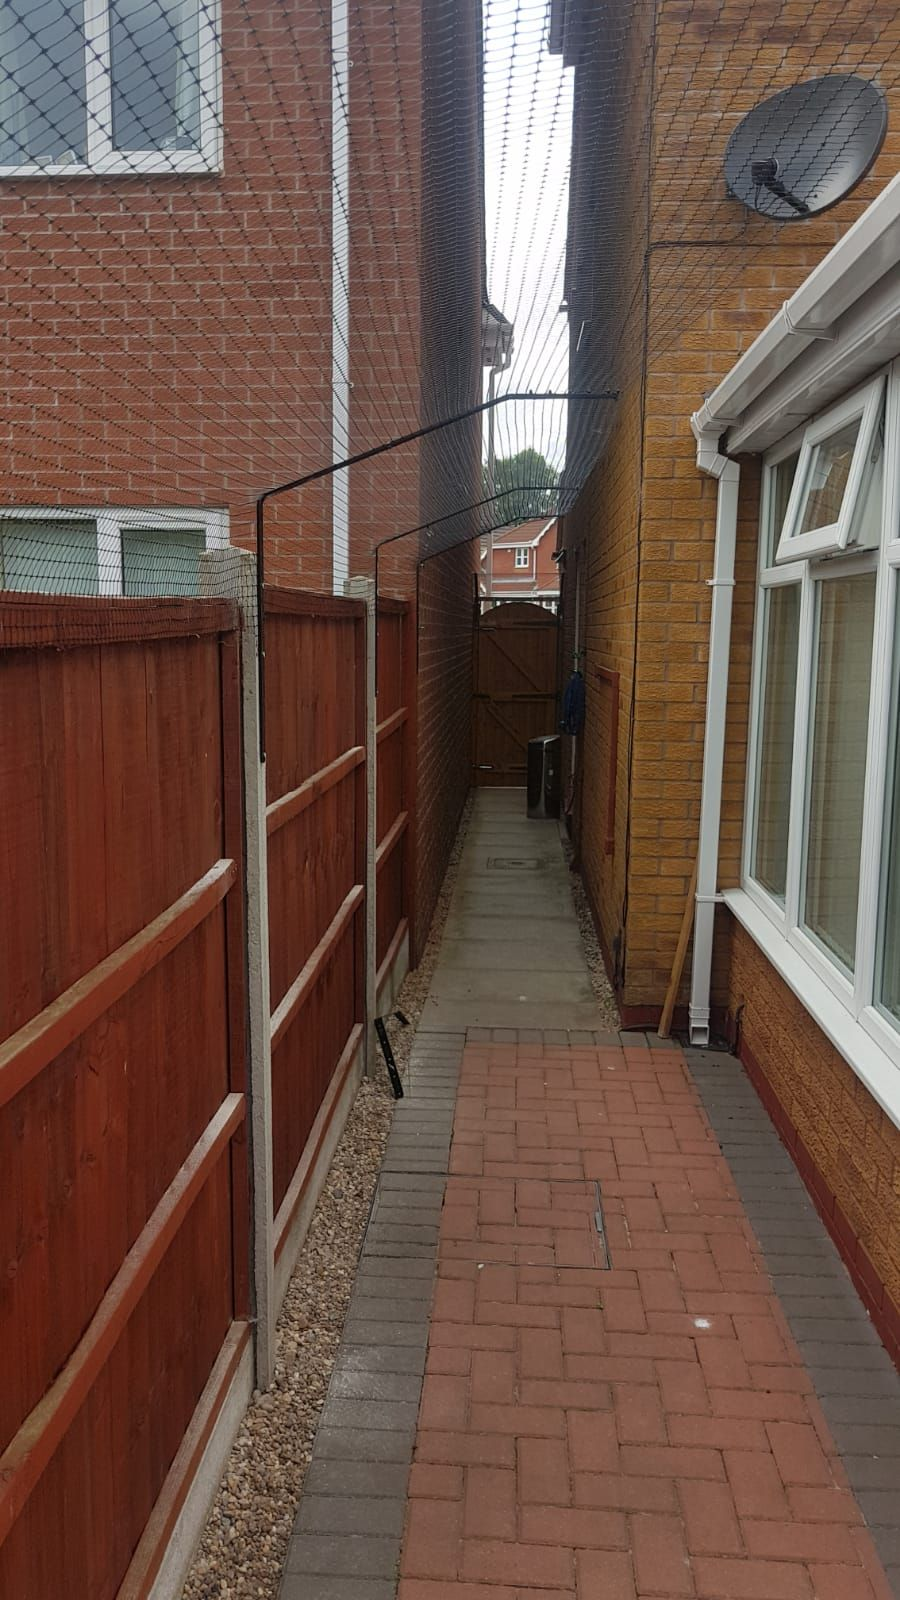 Extra long barrier in 2020 cat fence cat enclosure